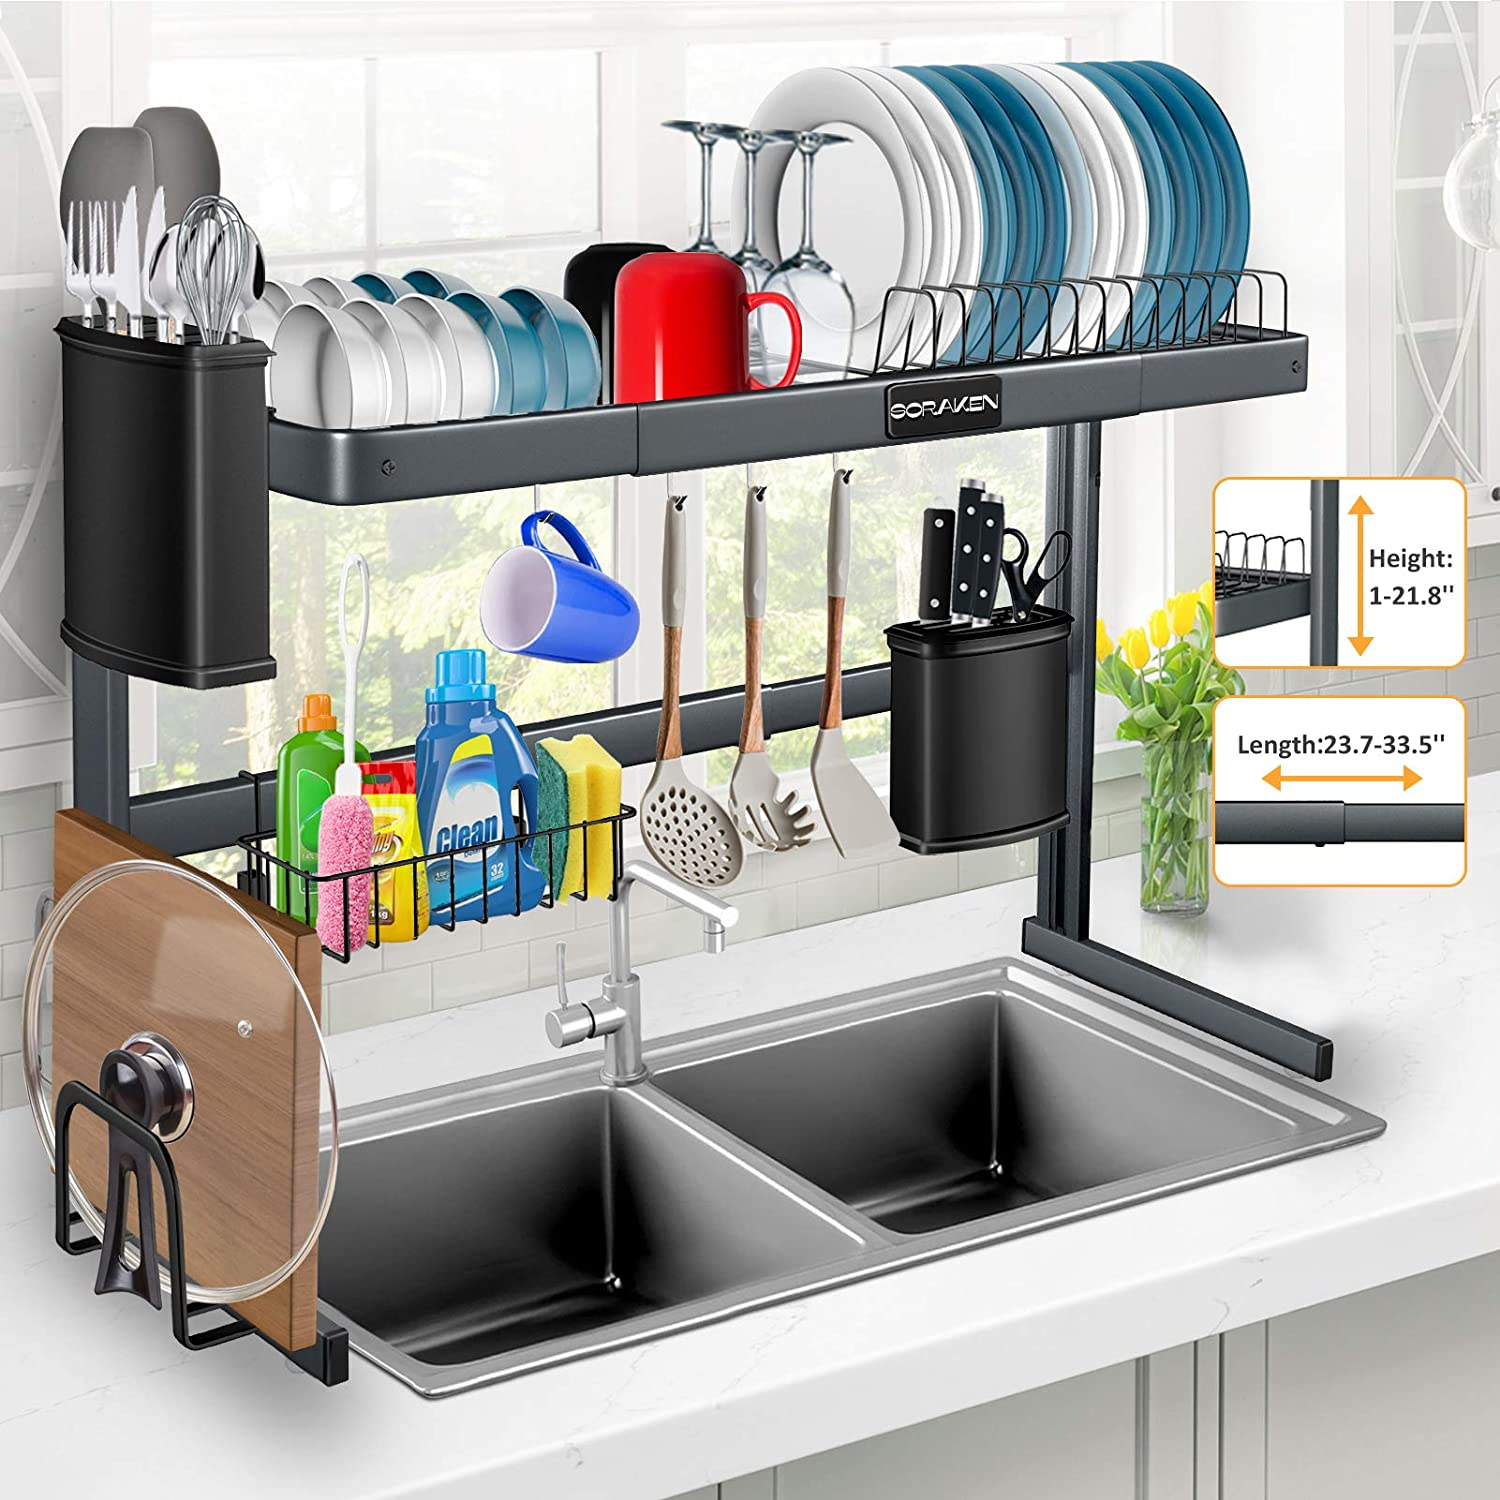 Amazon Com Over The Sink Dish Drying Rack Stainless Steel Over Sink Dish Drying Rack Height 1 21 8 Length 23 7 33 5 Adjustable For Dishes And Utensils Kitchen Countertop Organization And Storage